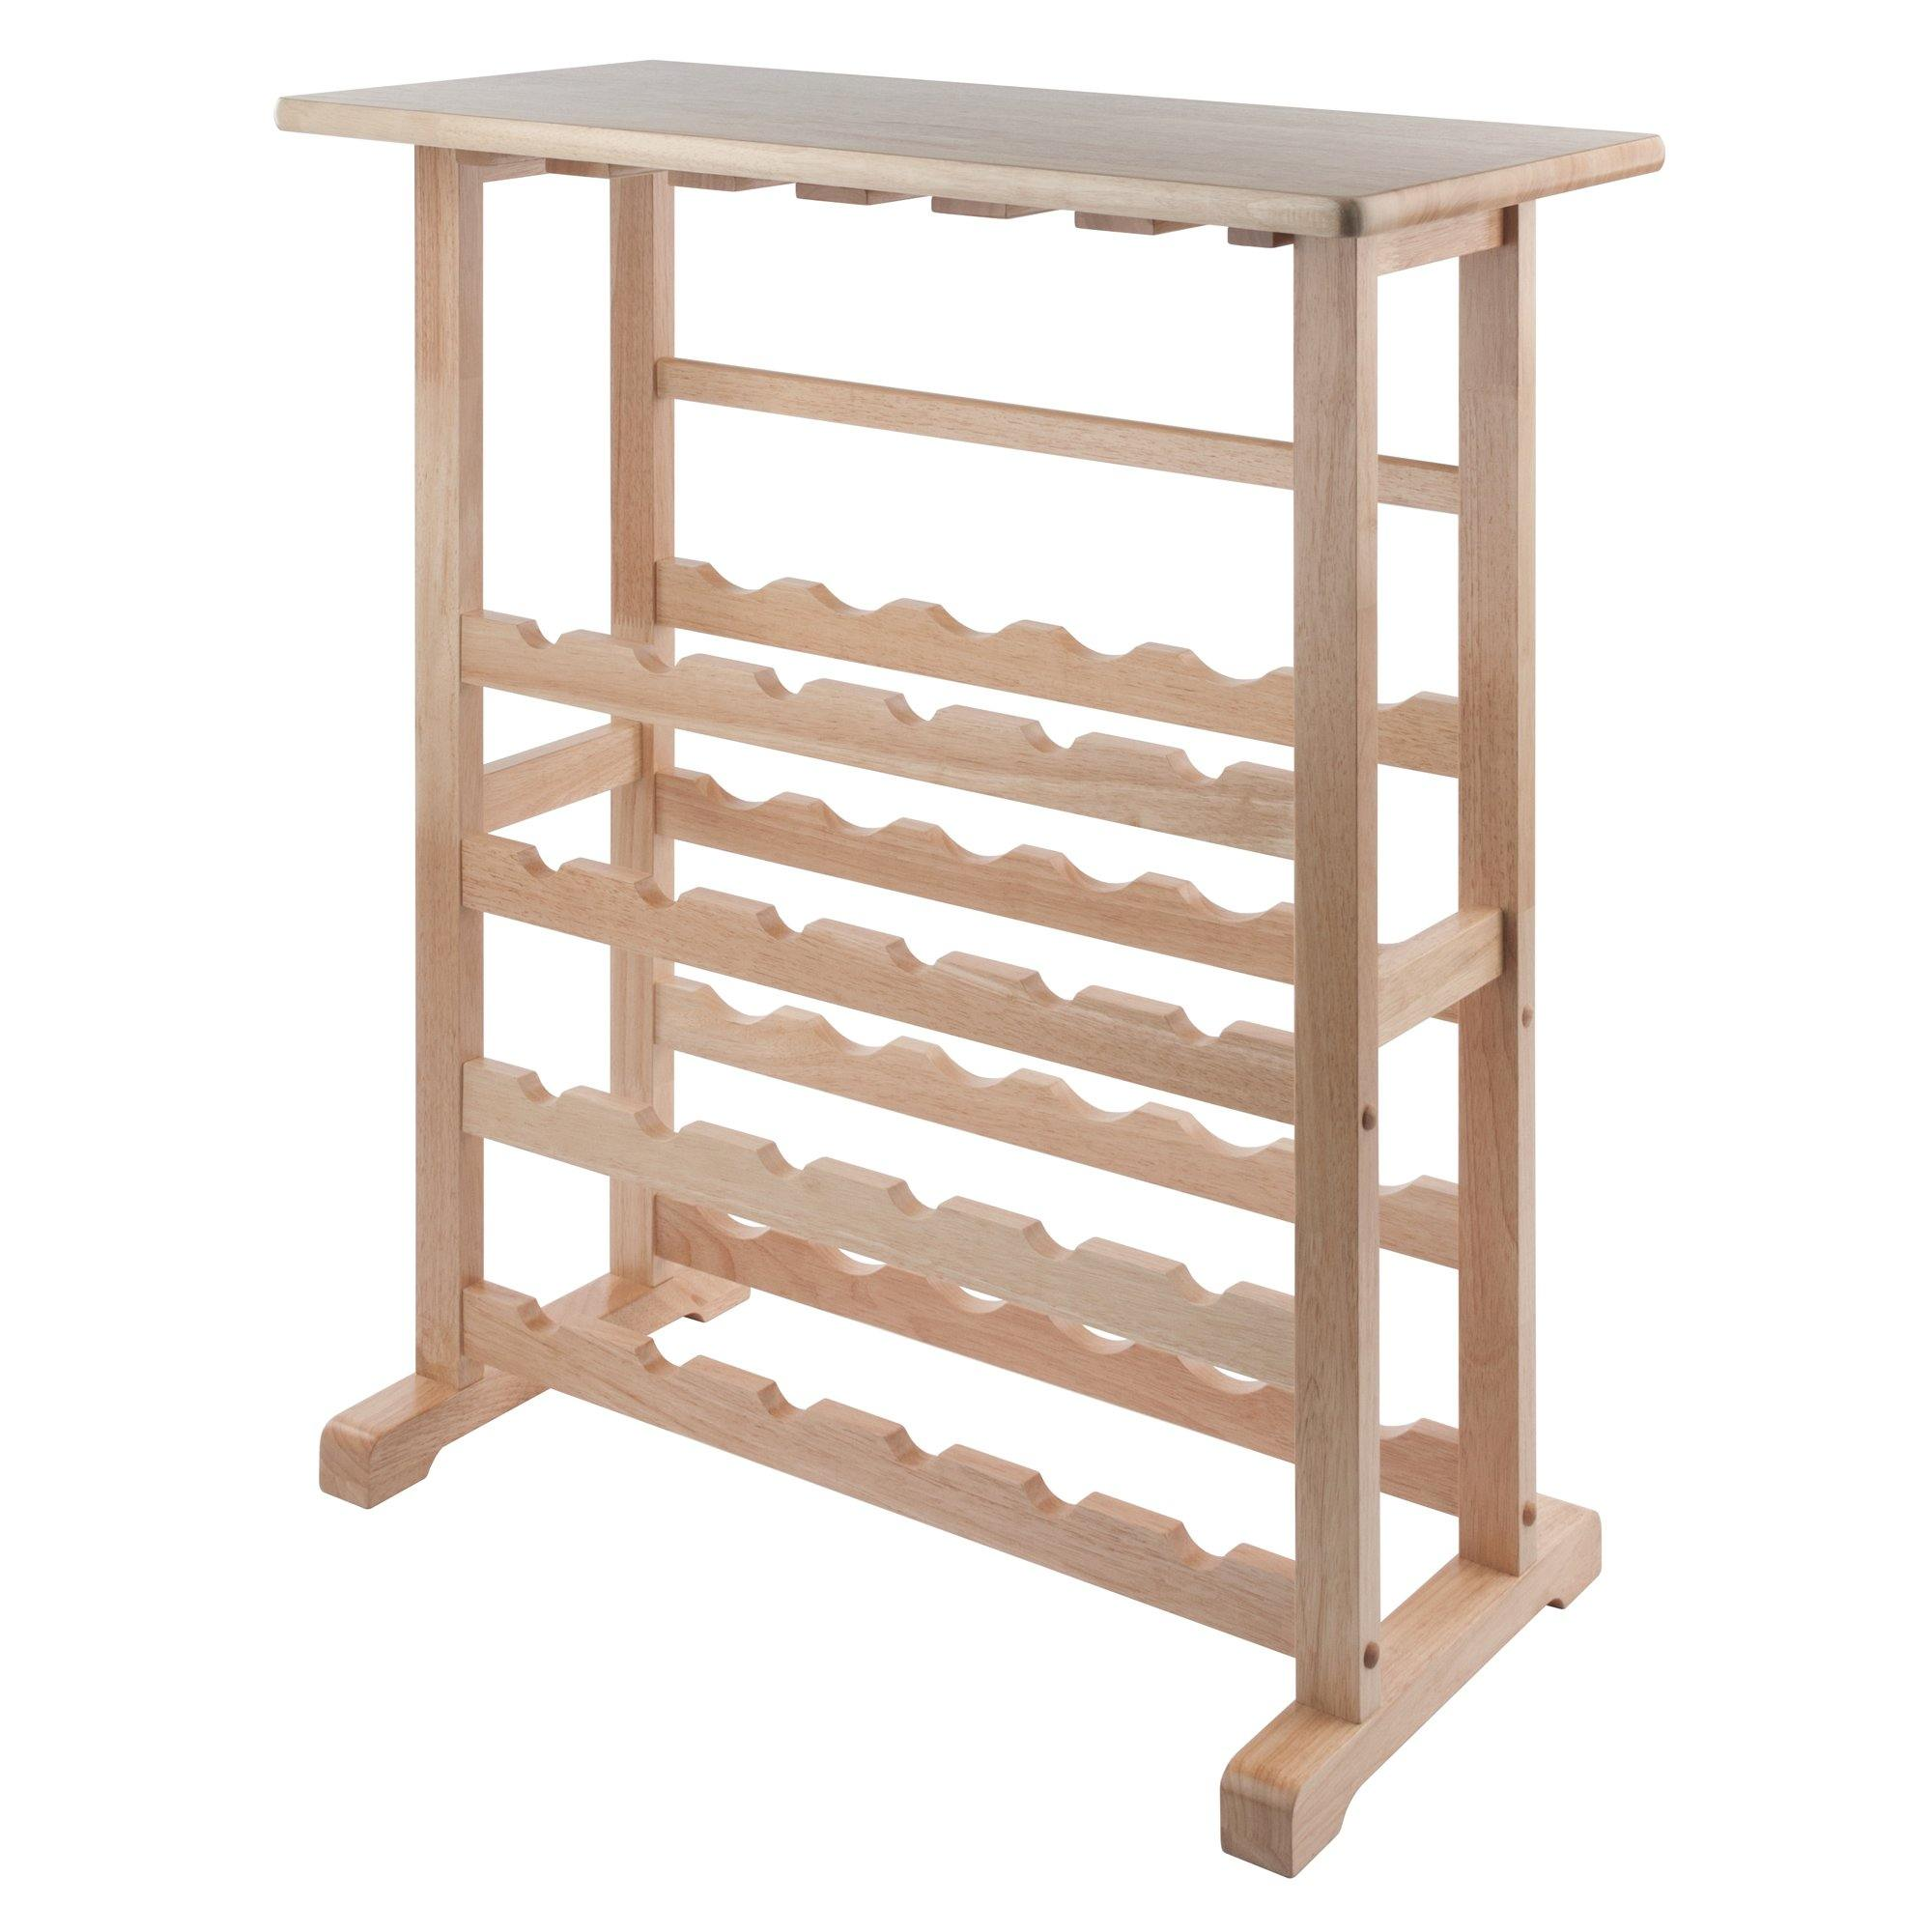 Vinny 24-Bottle Wine Rack, Natural - My USA Furniture